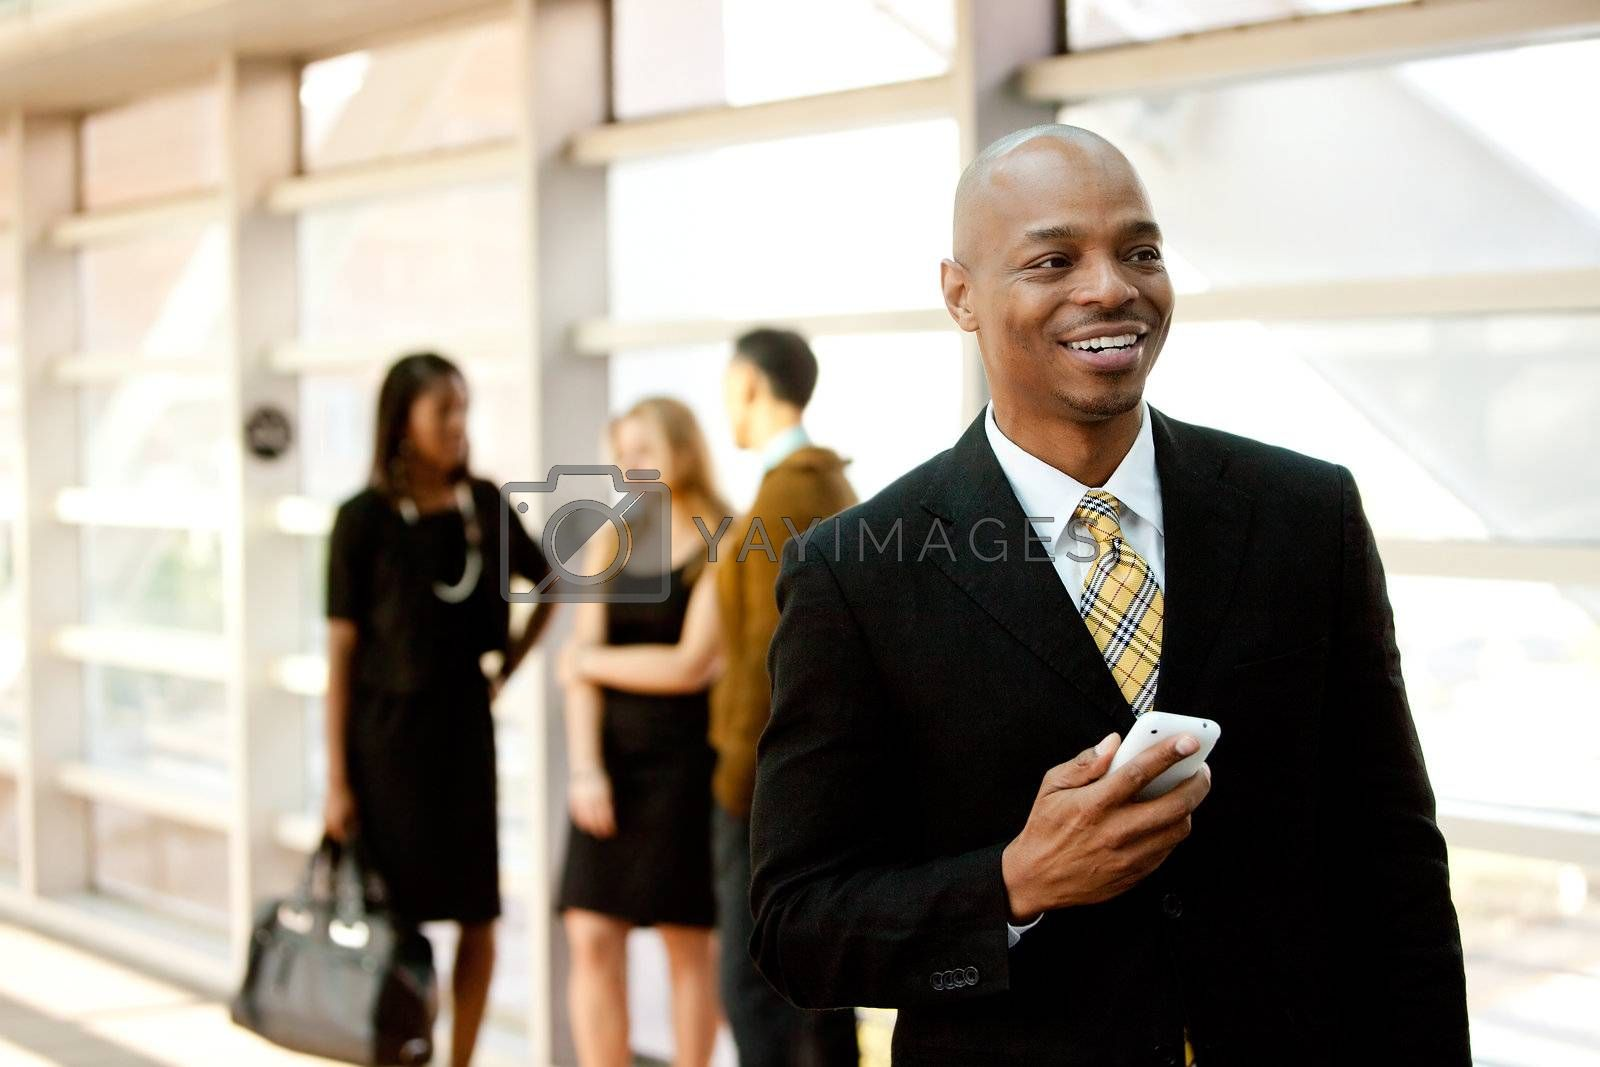 A business man with a smart phone and co-workers in the background